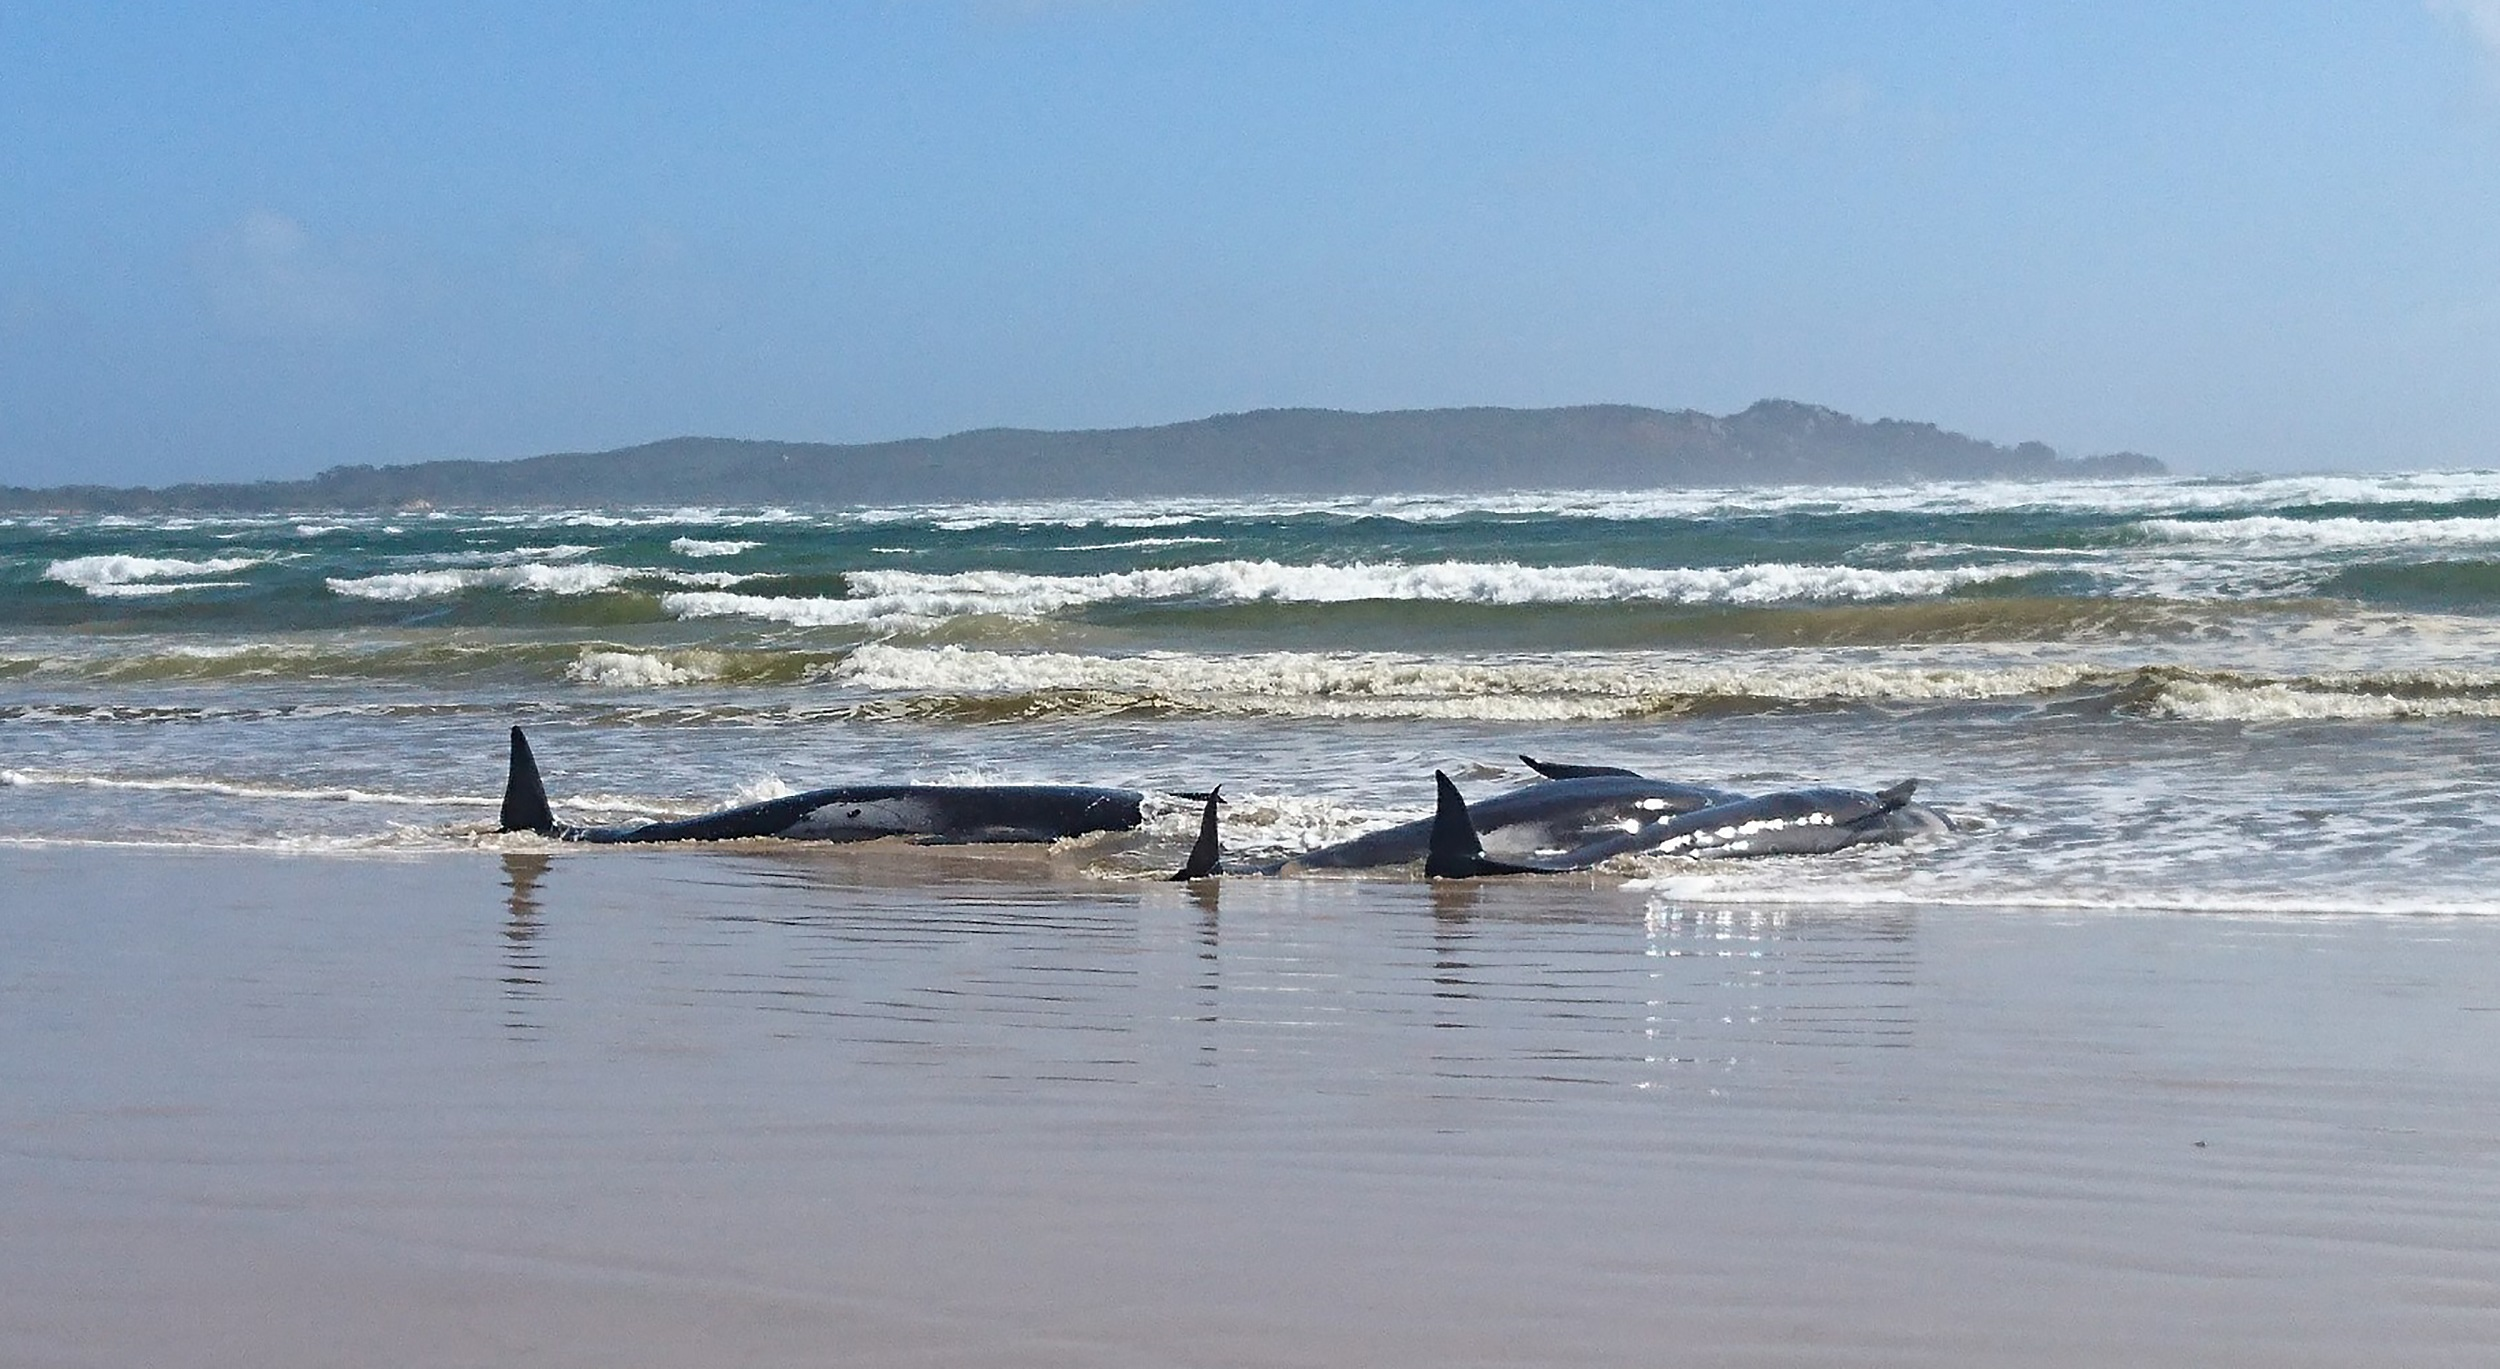 Hundreds of whales stranded on sandbar off Australian island